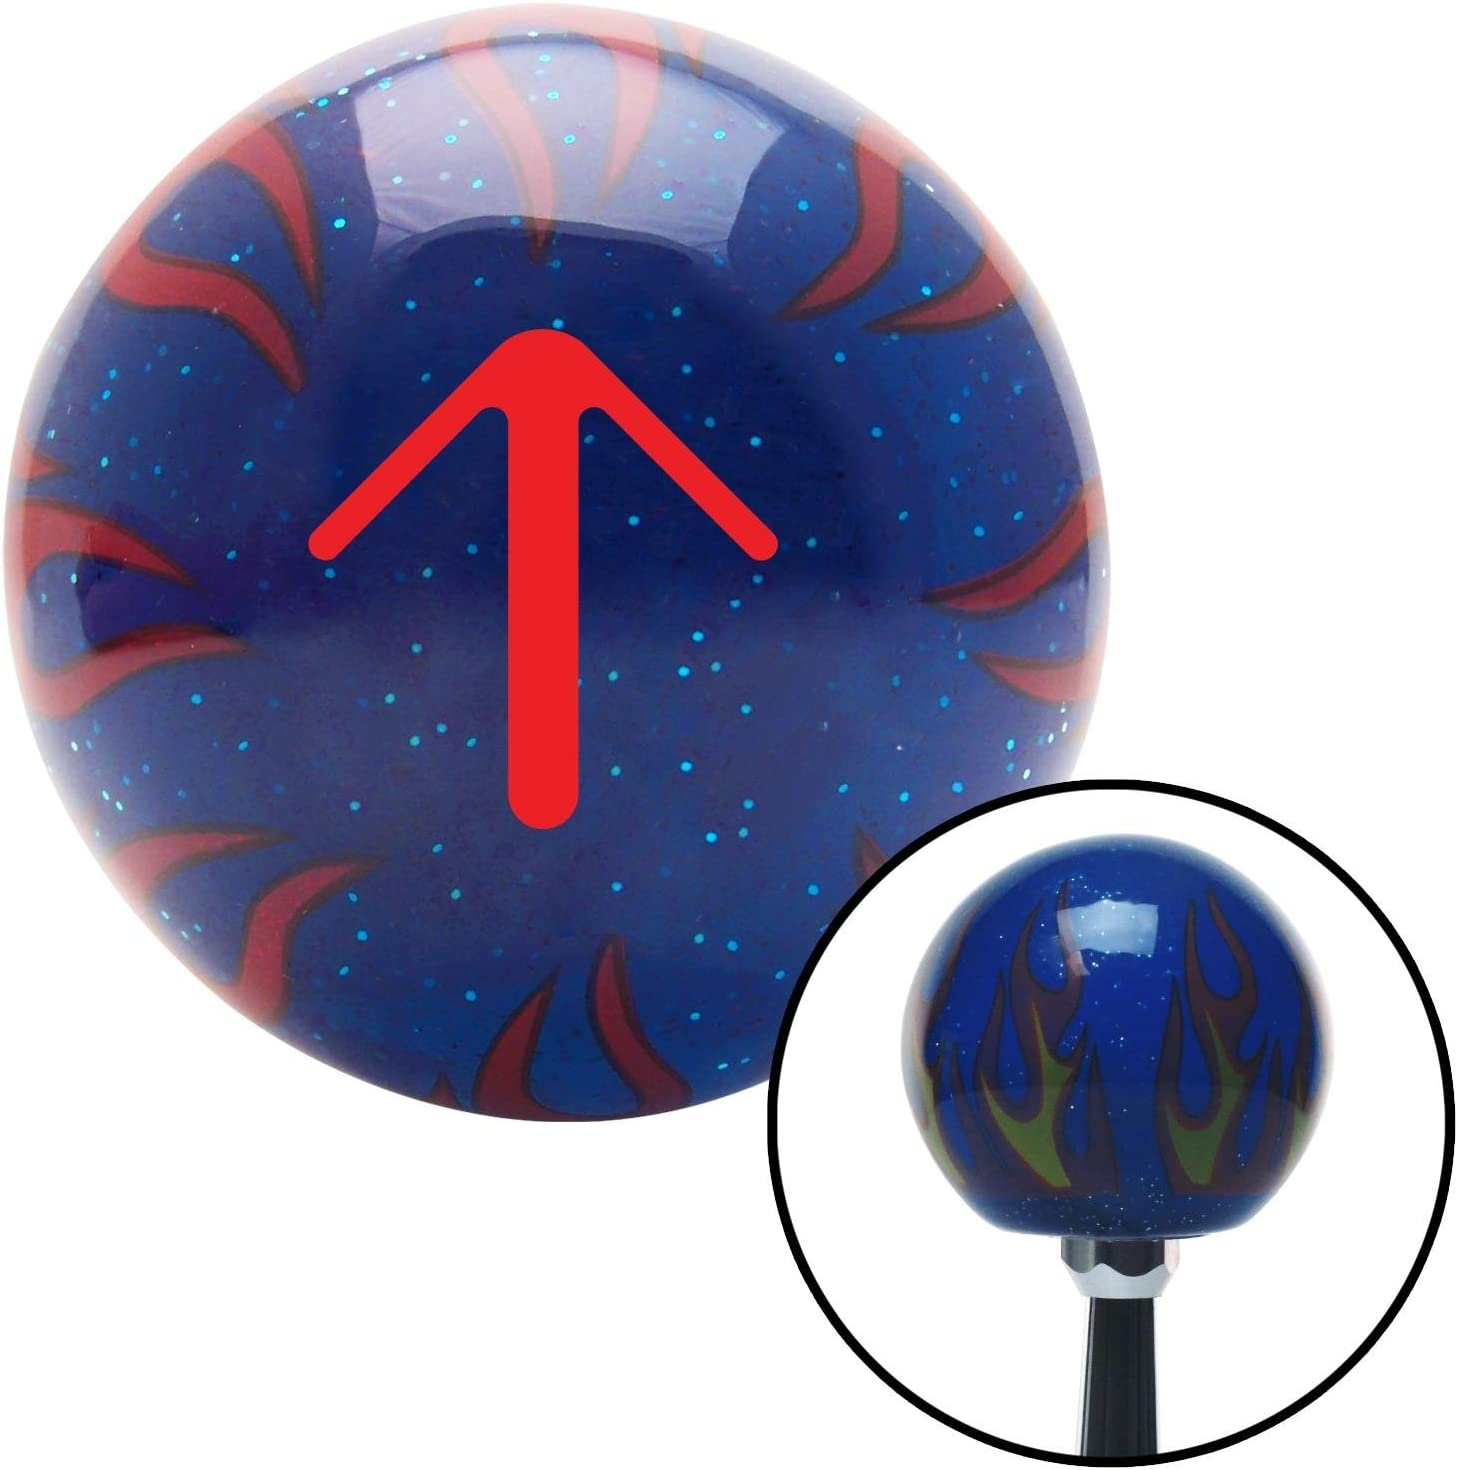 American Shifter 244470 Blue Flame Metal Flake Shift Knob with M16 x 1.5 Insert Red Solid Pointing Arrow Up